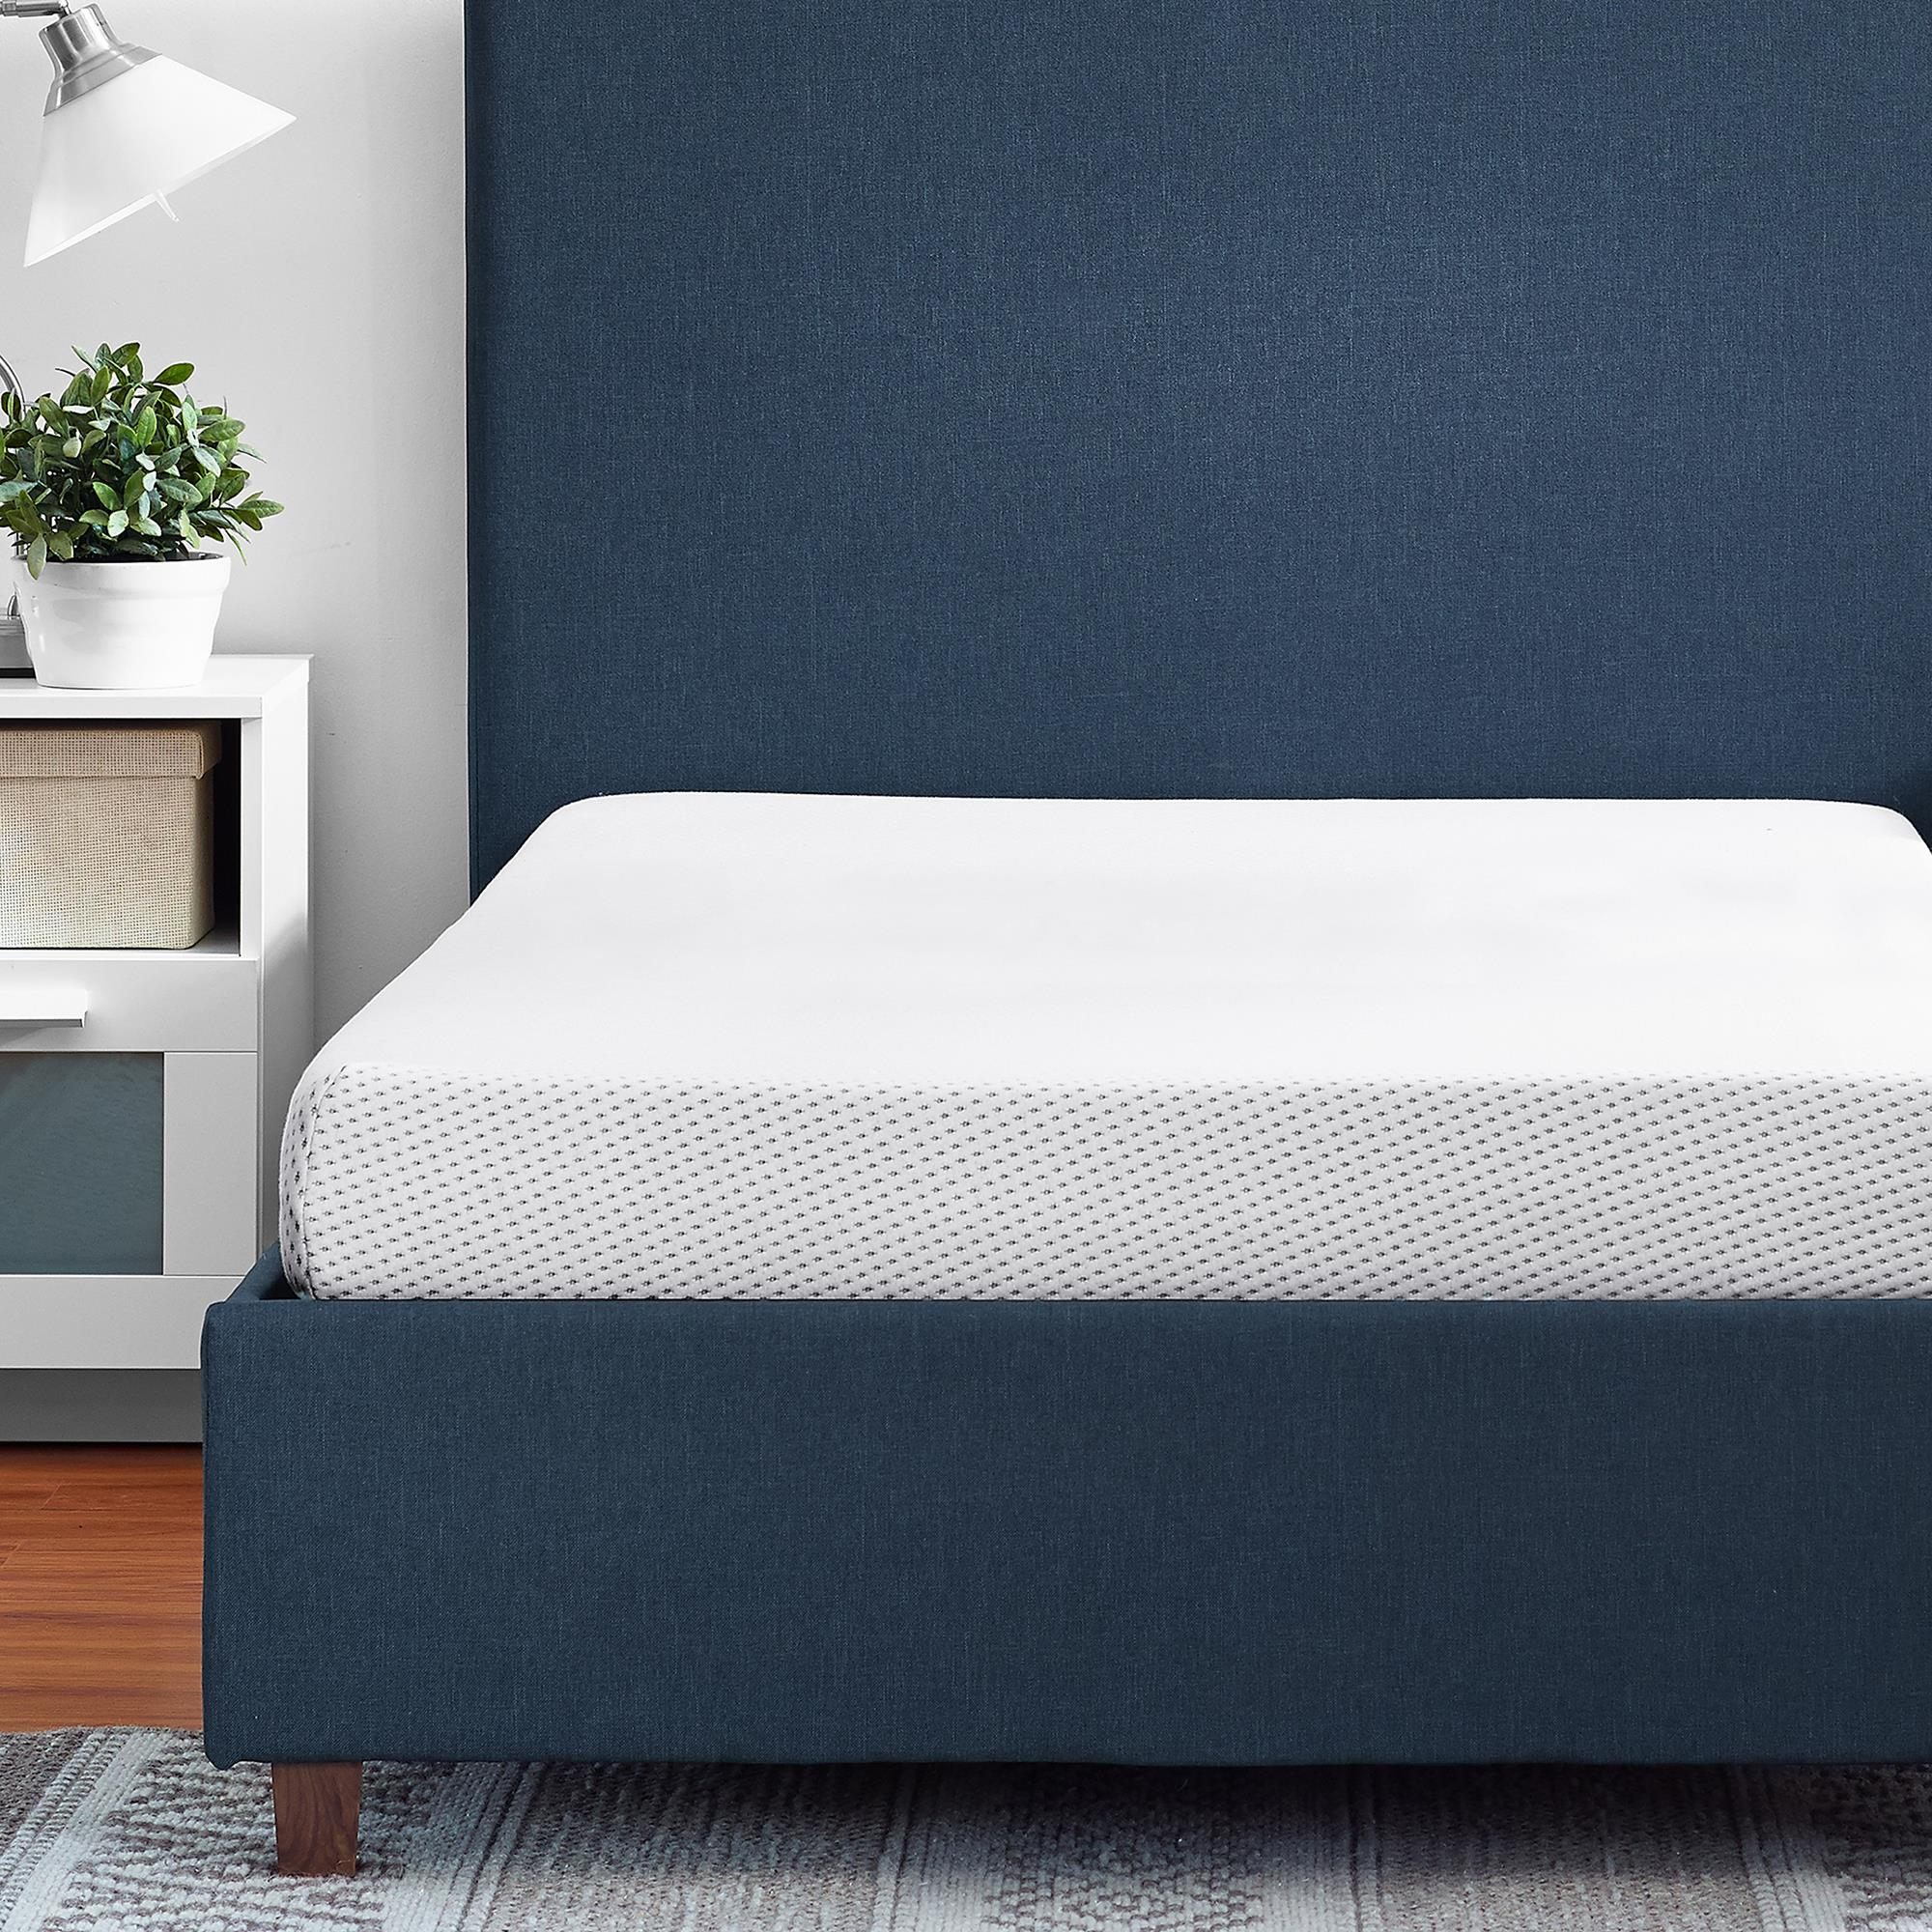 Signature Sleep-Sleep Tight 5 Inch Youth Foam Mattress with CertiPUR-US